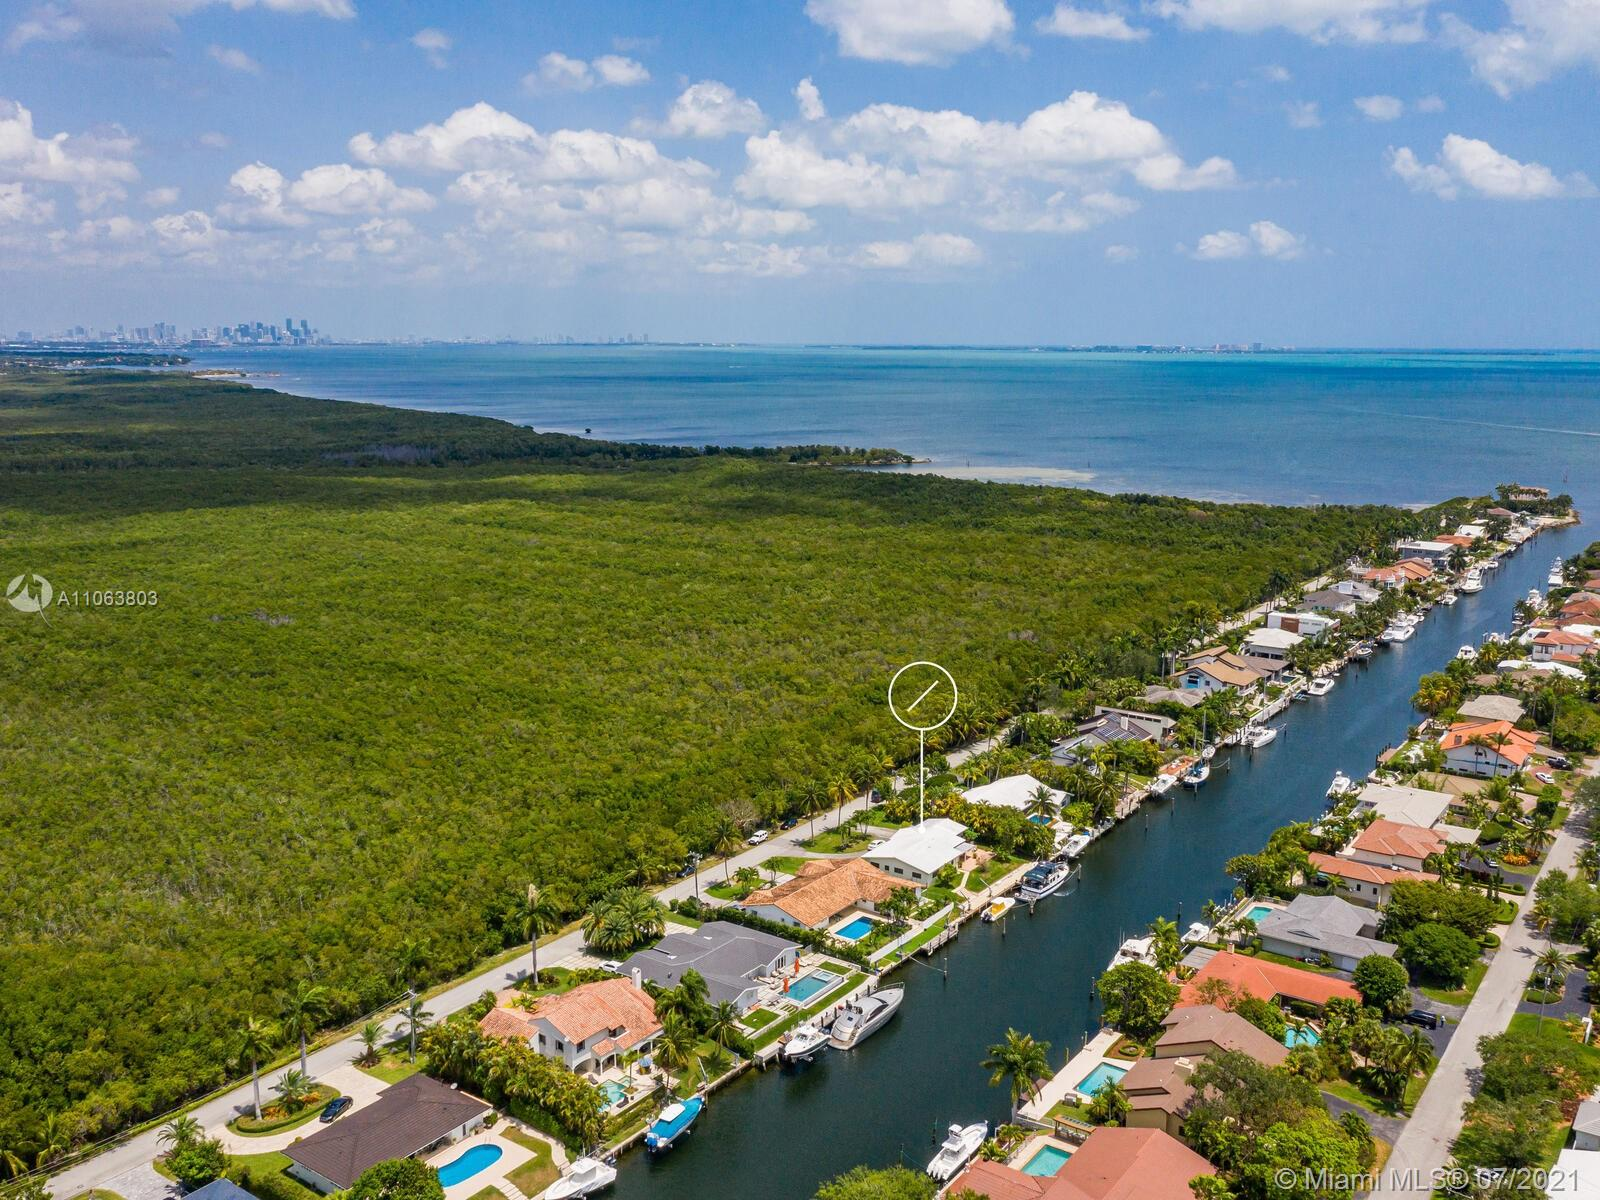 Big Opportunity knocks in Gables by the Sea!  Direct Ocean Access to Biscayne Bay from 100' private seawall. Bring your contractor or architect and make your dreams come true with renovations or new build on 11,500 SF Lot. Current ranch style 1964 home last sold in 1976.  Located on quiet Lugo Ave on the wide Lugo canal with plenty of room for your big yacht.  This cute 2539 Adj SF home has 3BD and 2BA with tons of potential. Two-car garage, circular drive, peaceful water views and nice floor plan. Gables by the Sea community is 24/7 guard-gated with a voluntary HOA. All top-rated schools and A+ municipal services.  Well situated in the City Beautiful, Coral Gables, with a neighborhood park, pedestrian-friendly tree-lined, low-traffic, closed-end family friendly streets. Truly Paradise!